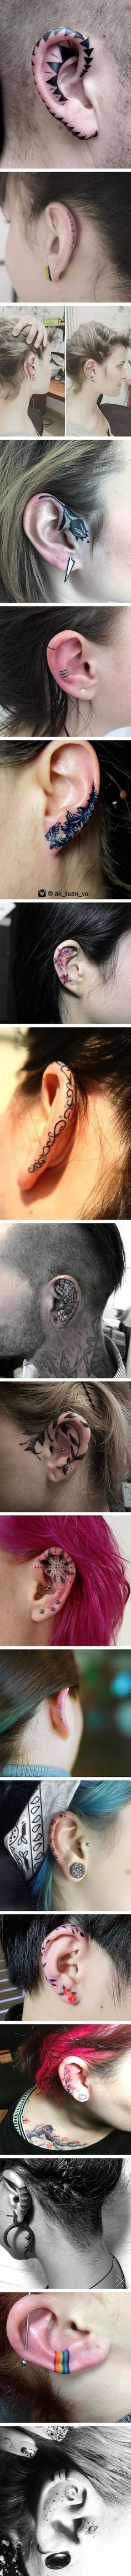 Helix tattoos are the snazzy new body art trend that's taking over the internet